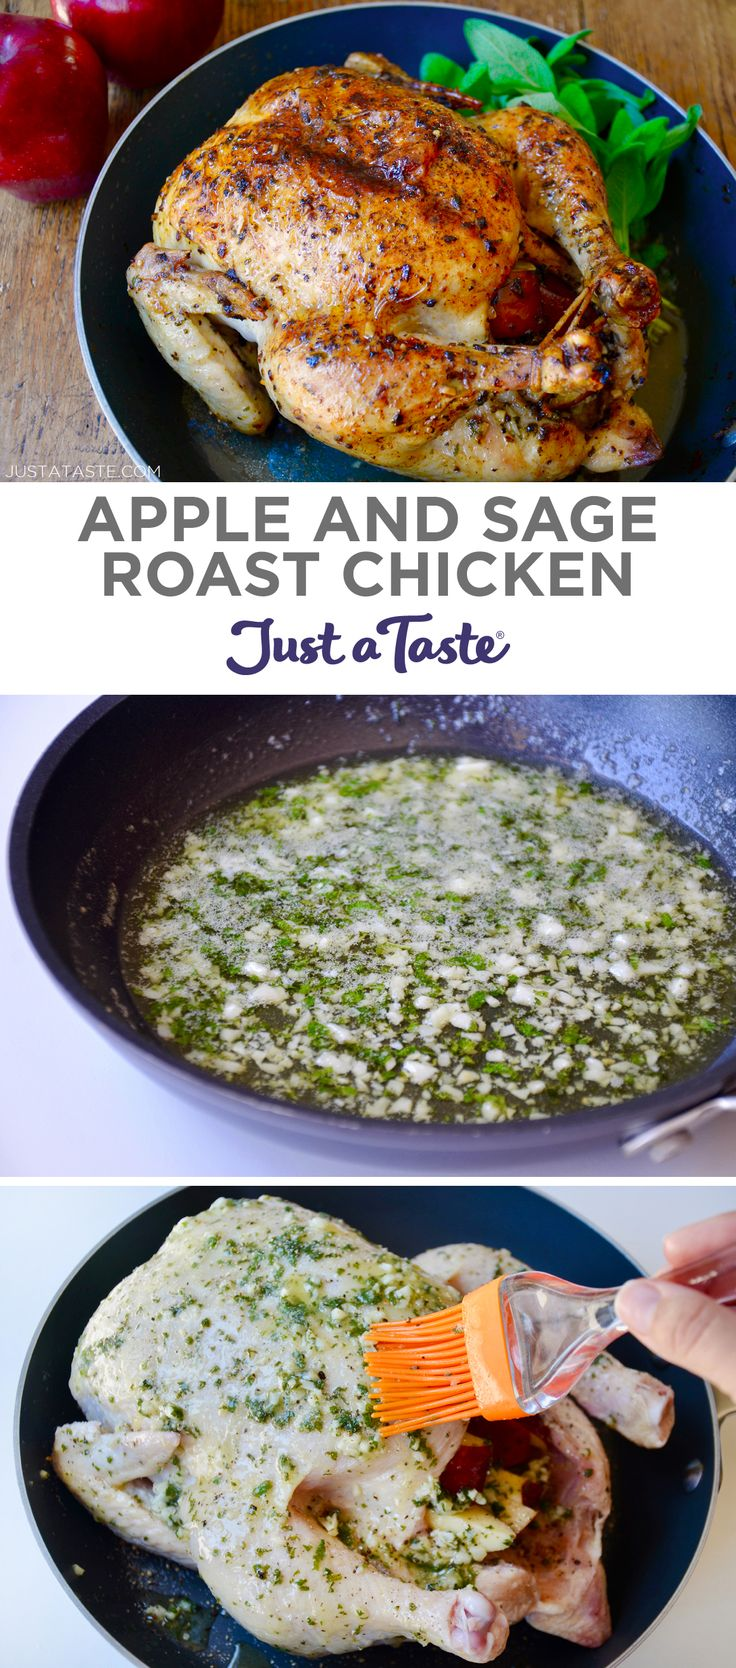 Apple and Sage Roast Chicken recipe from justataste.com #recipes #ChickenRecipes #healthyeating